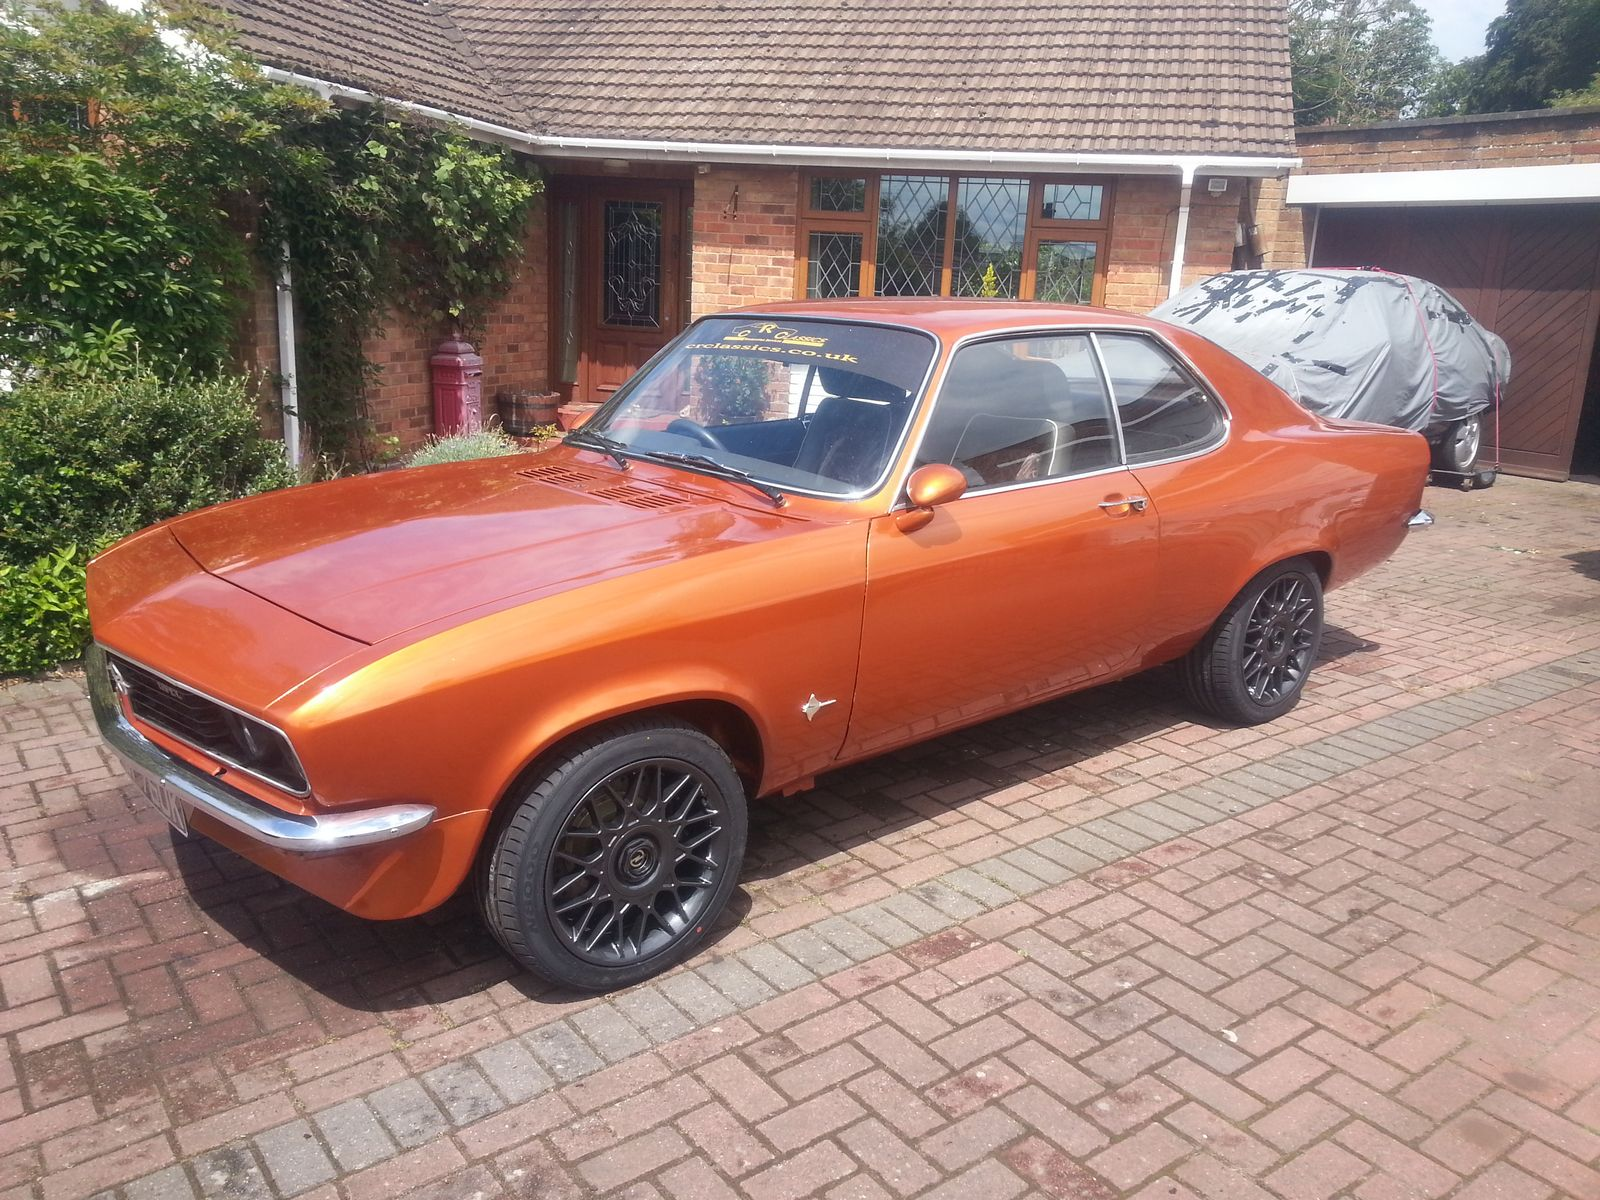 Hello Saying And Welcome Opel Manta Owners Club 1973 Interior Tn 20160706 124453